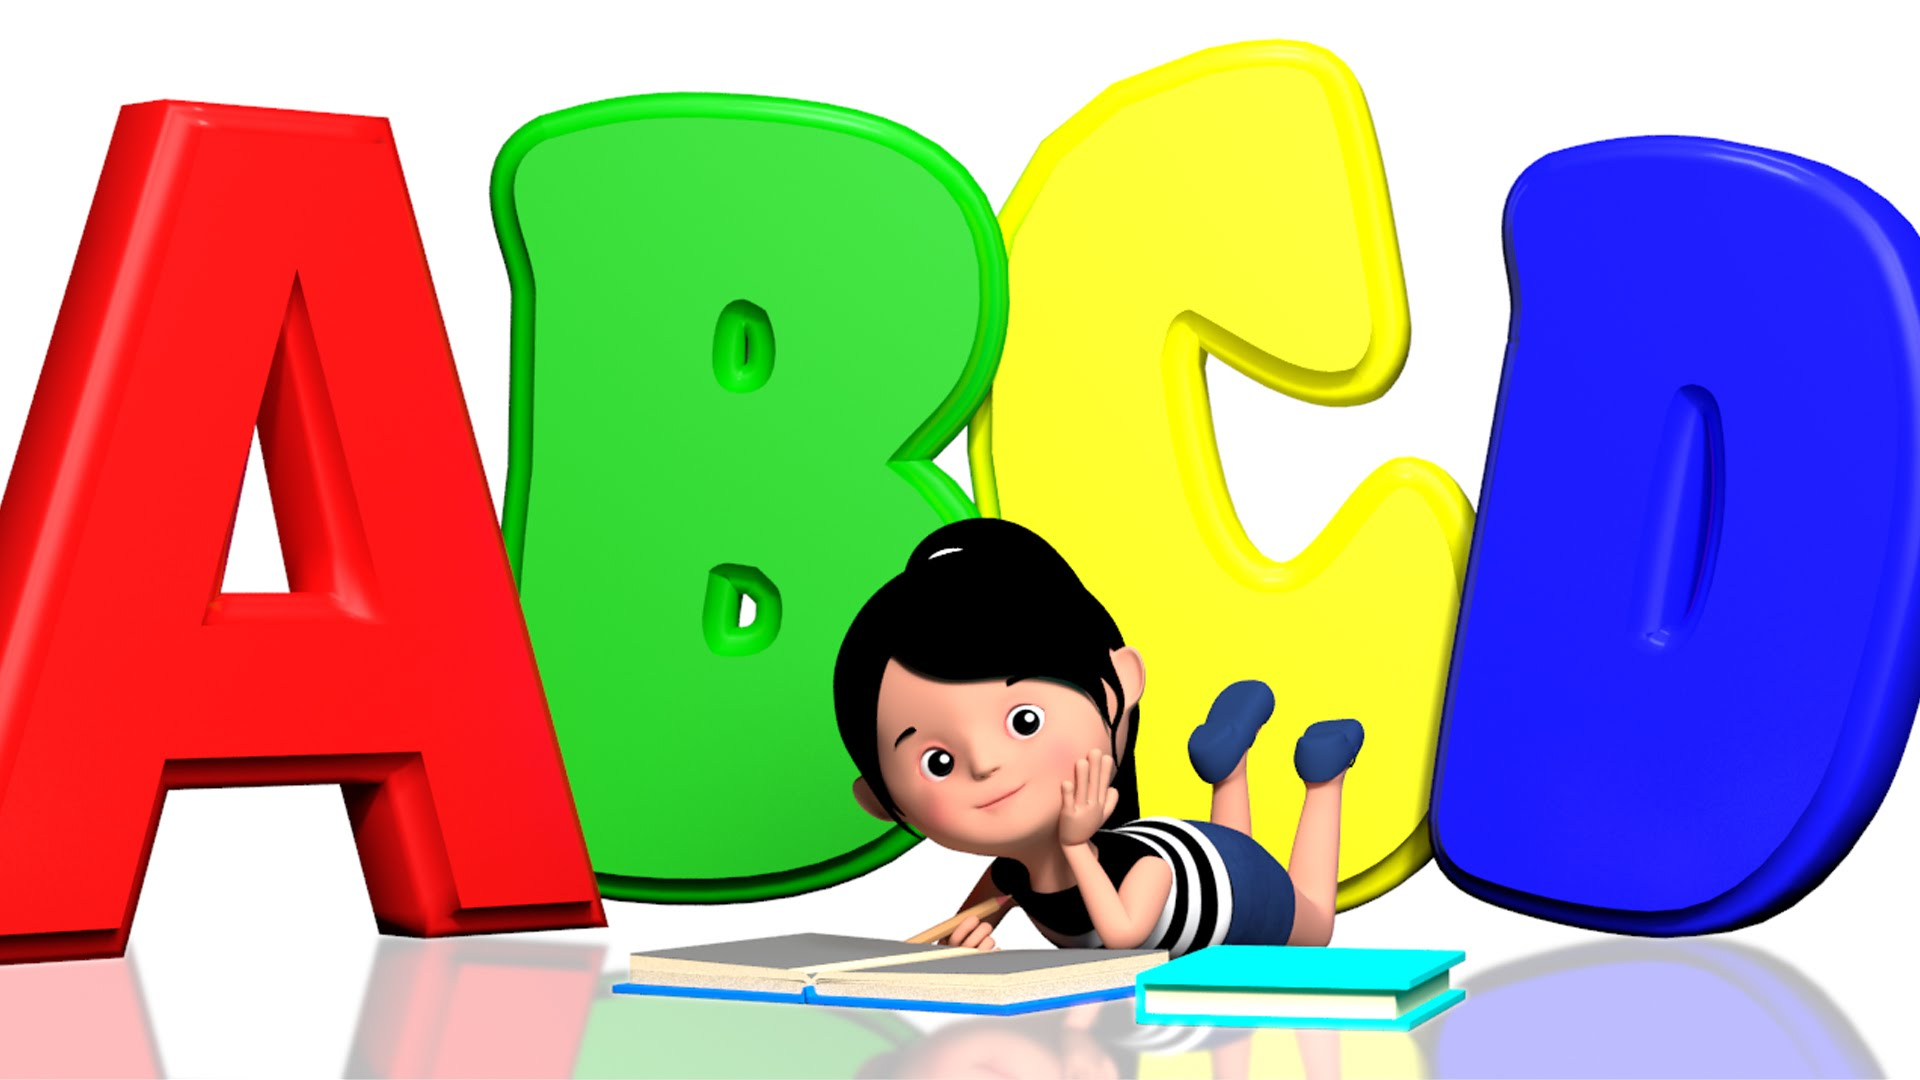 Abc clipart abcd, Abc abcd Transparent FREE for download on ... black and white